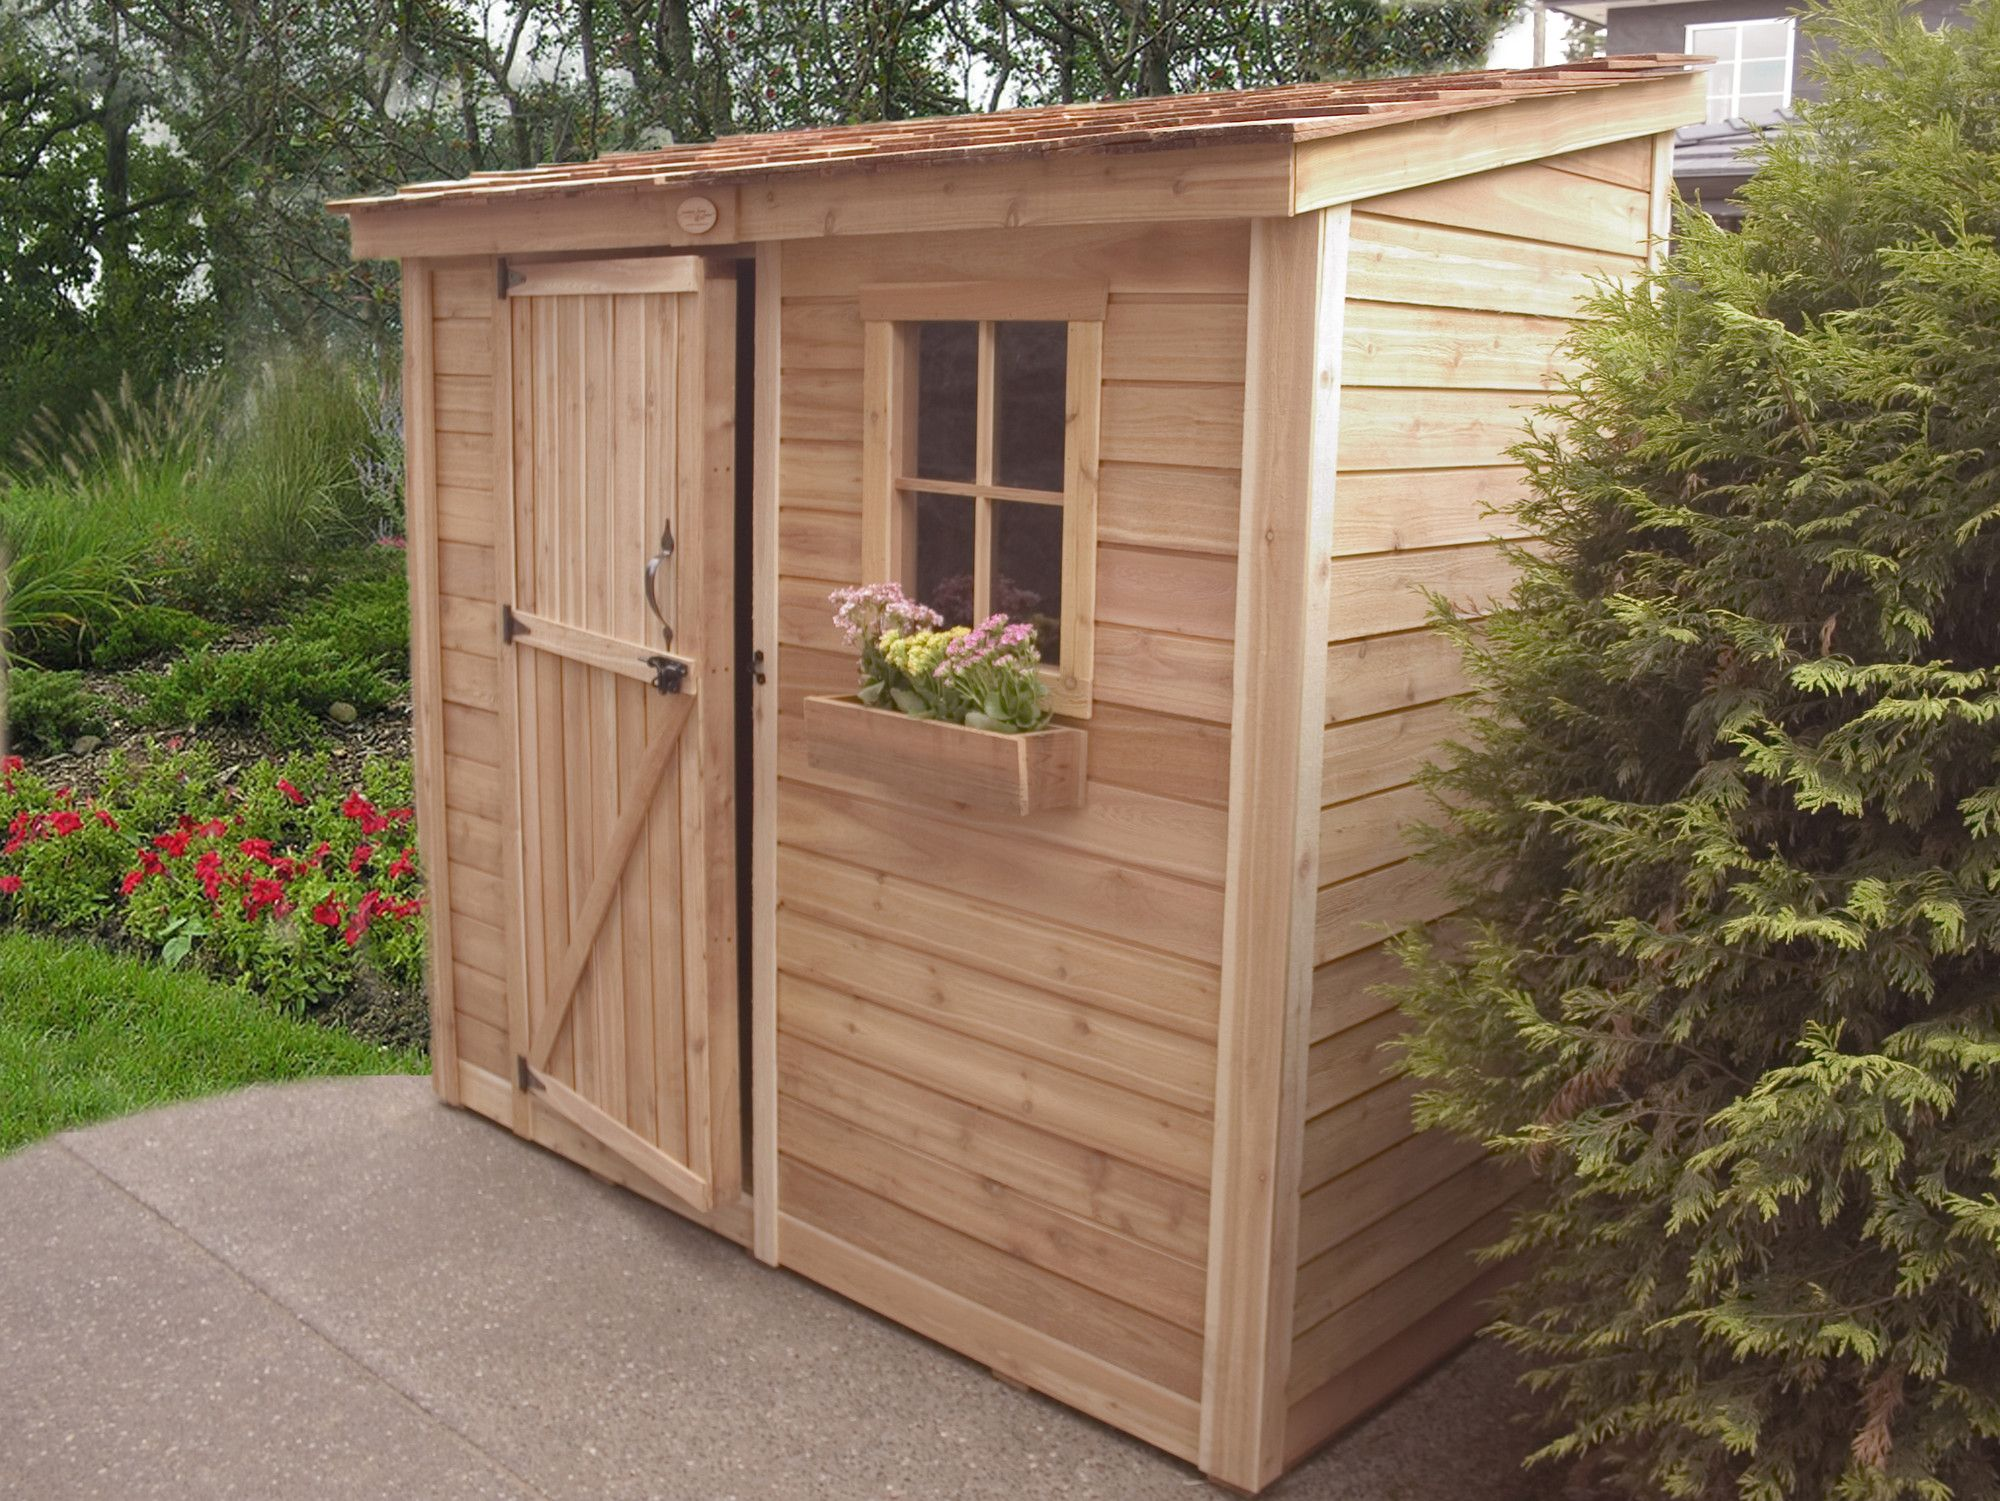 Delightful Outdoor Living Today SpaceSaver 8 Ft. W X 4 Ft. D Wood Lean